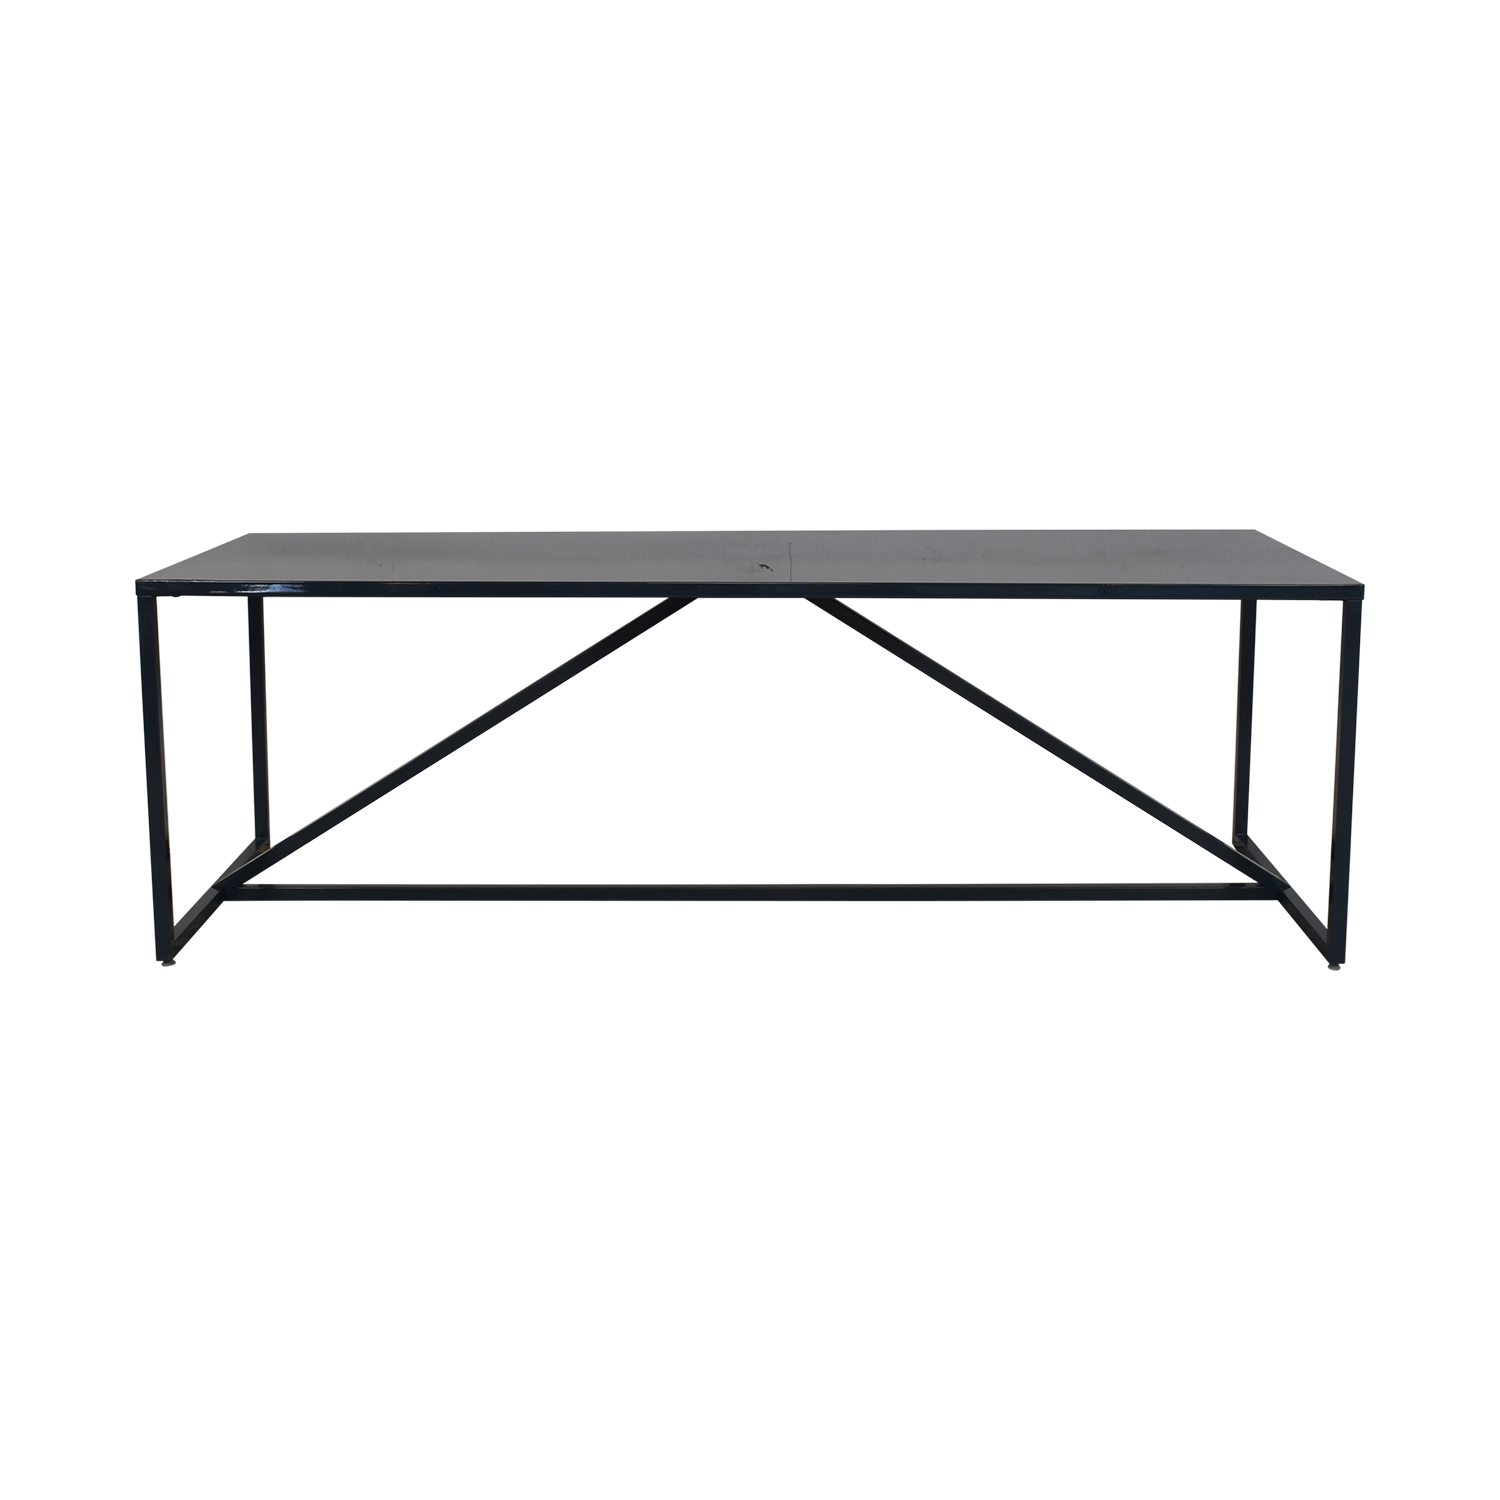 Blu Dot Blu Dot Strut X-Large Table price